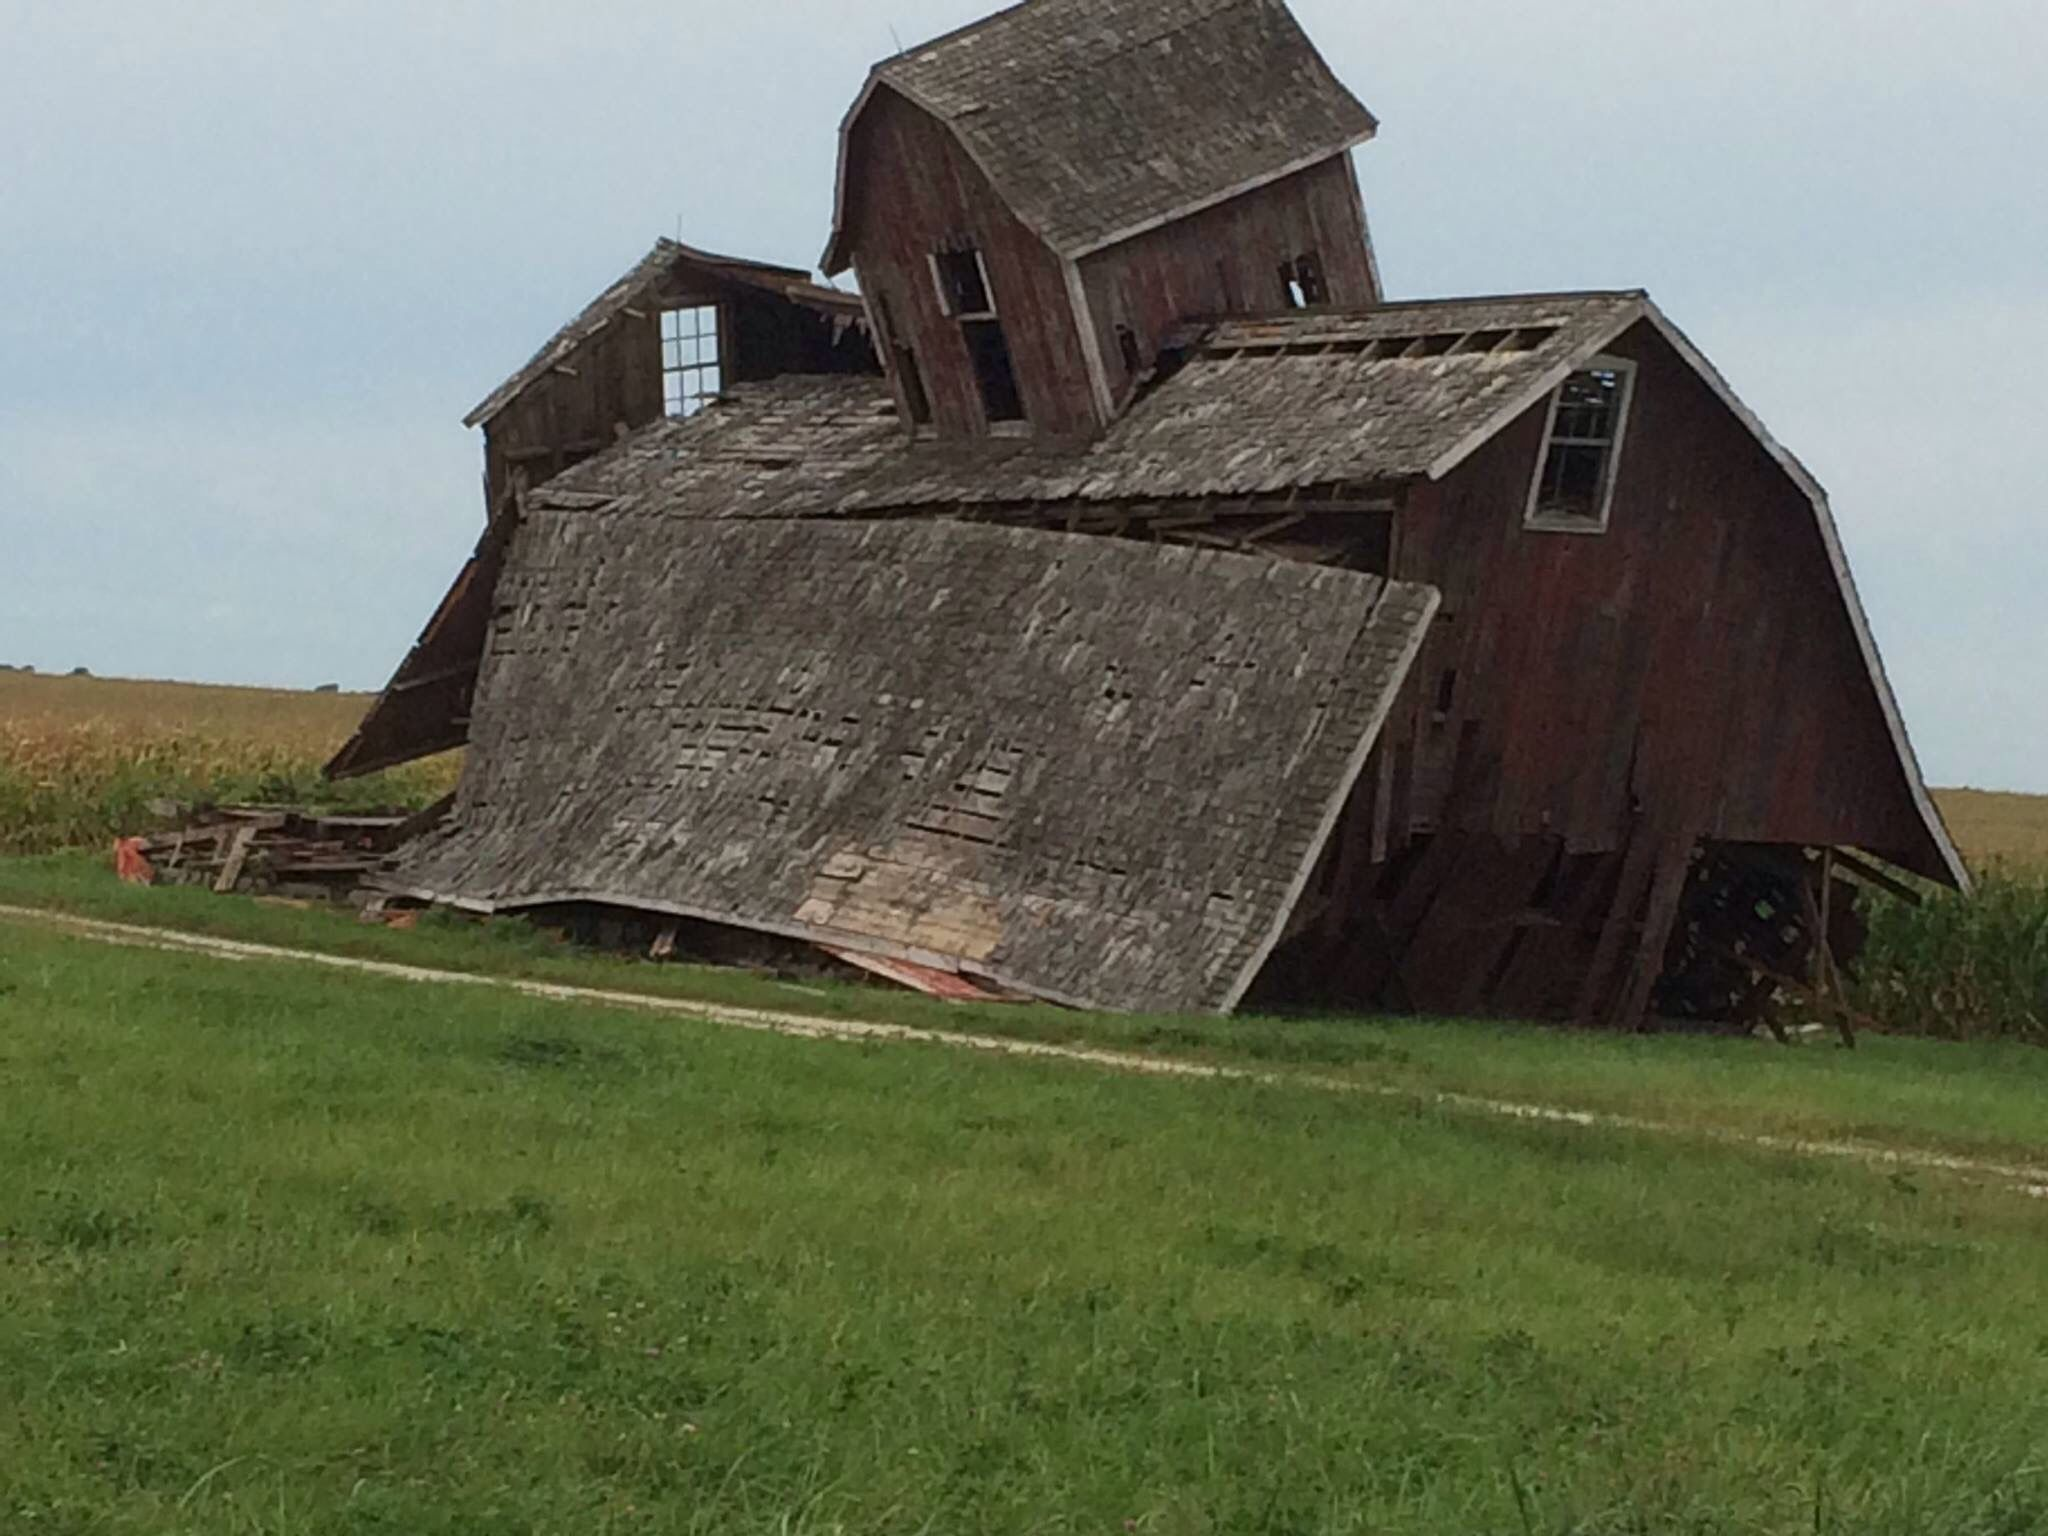 Pin By Glen Srigley On Barns Old And New Old Barns Farm Buildings Abandoned Houses